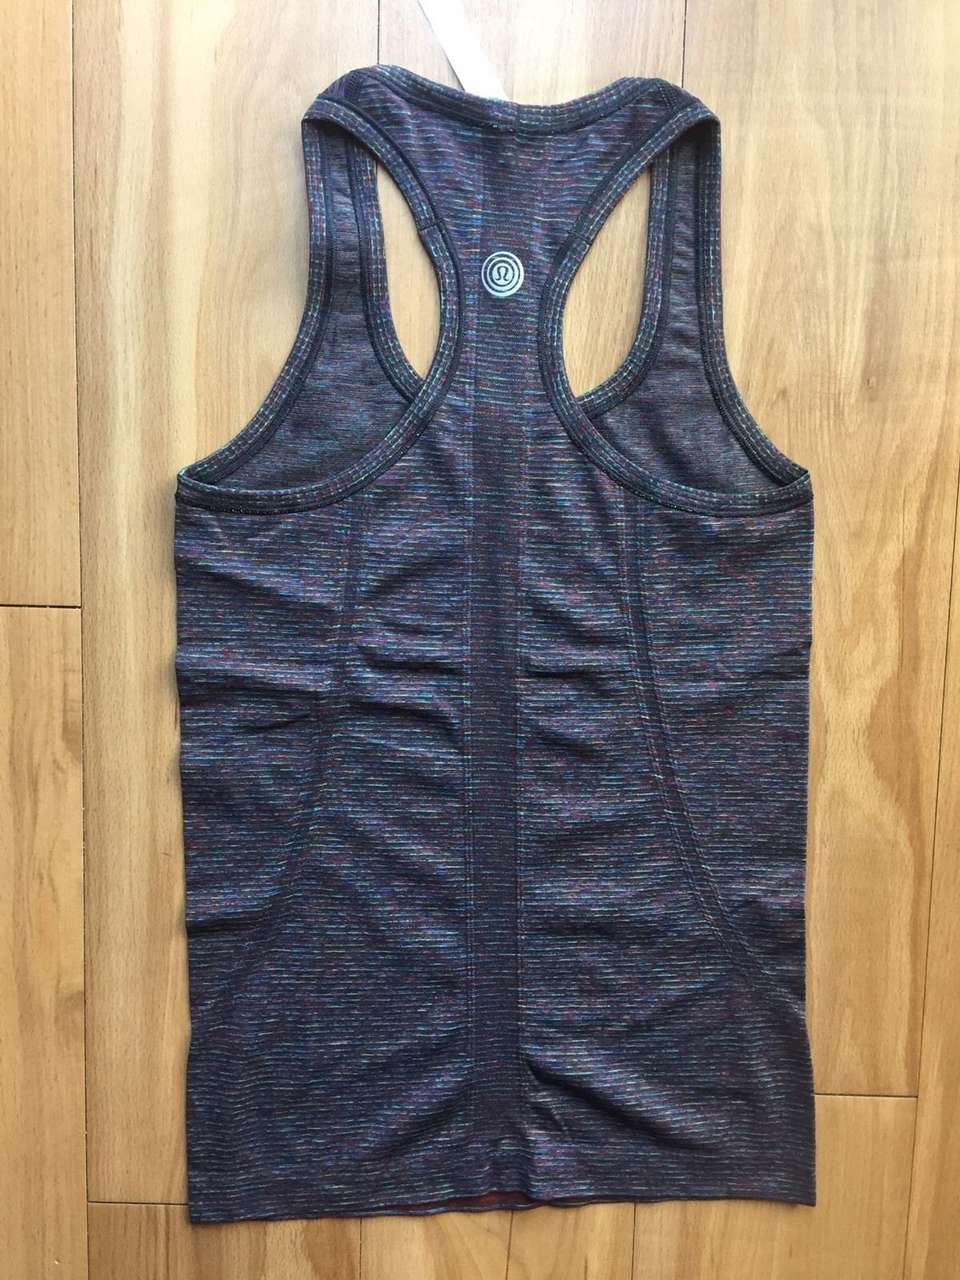 Lululemon Swiftly Tech Racerback *SW - 2017 Seawheeze - RDLM